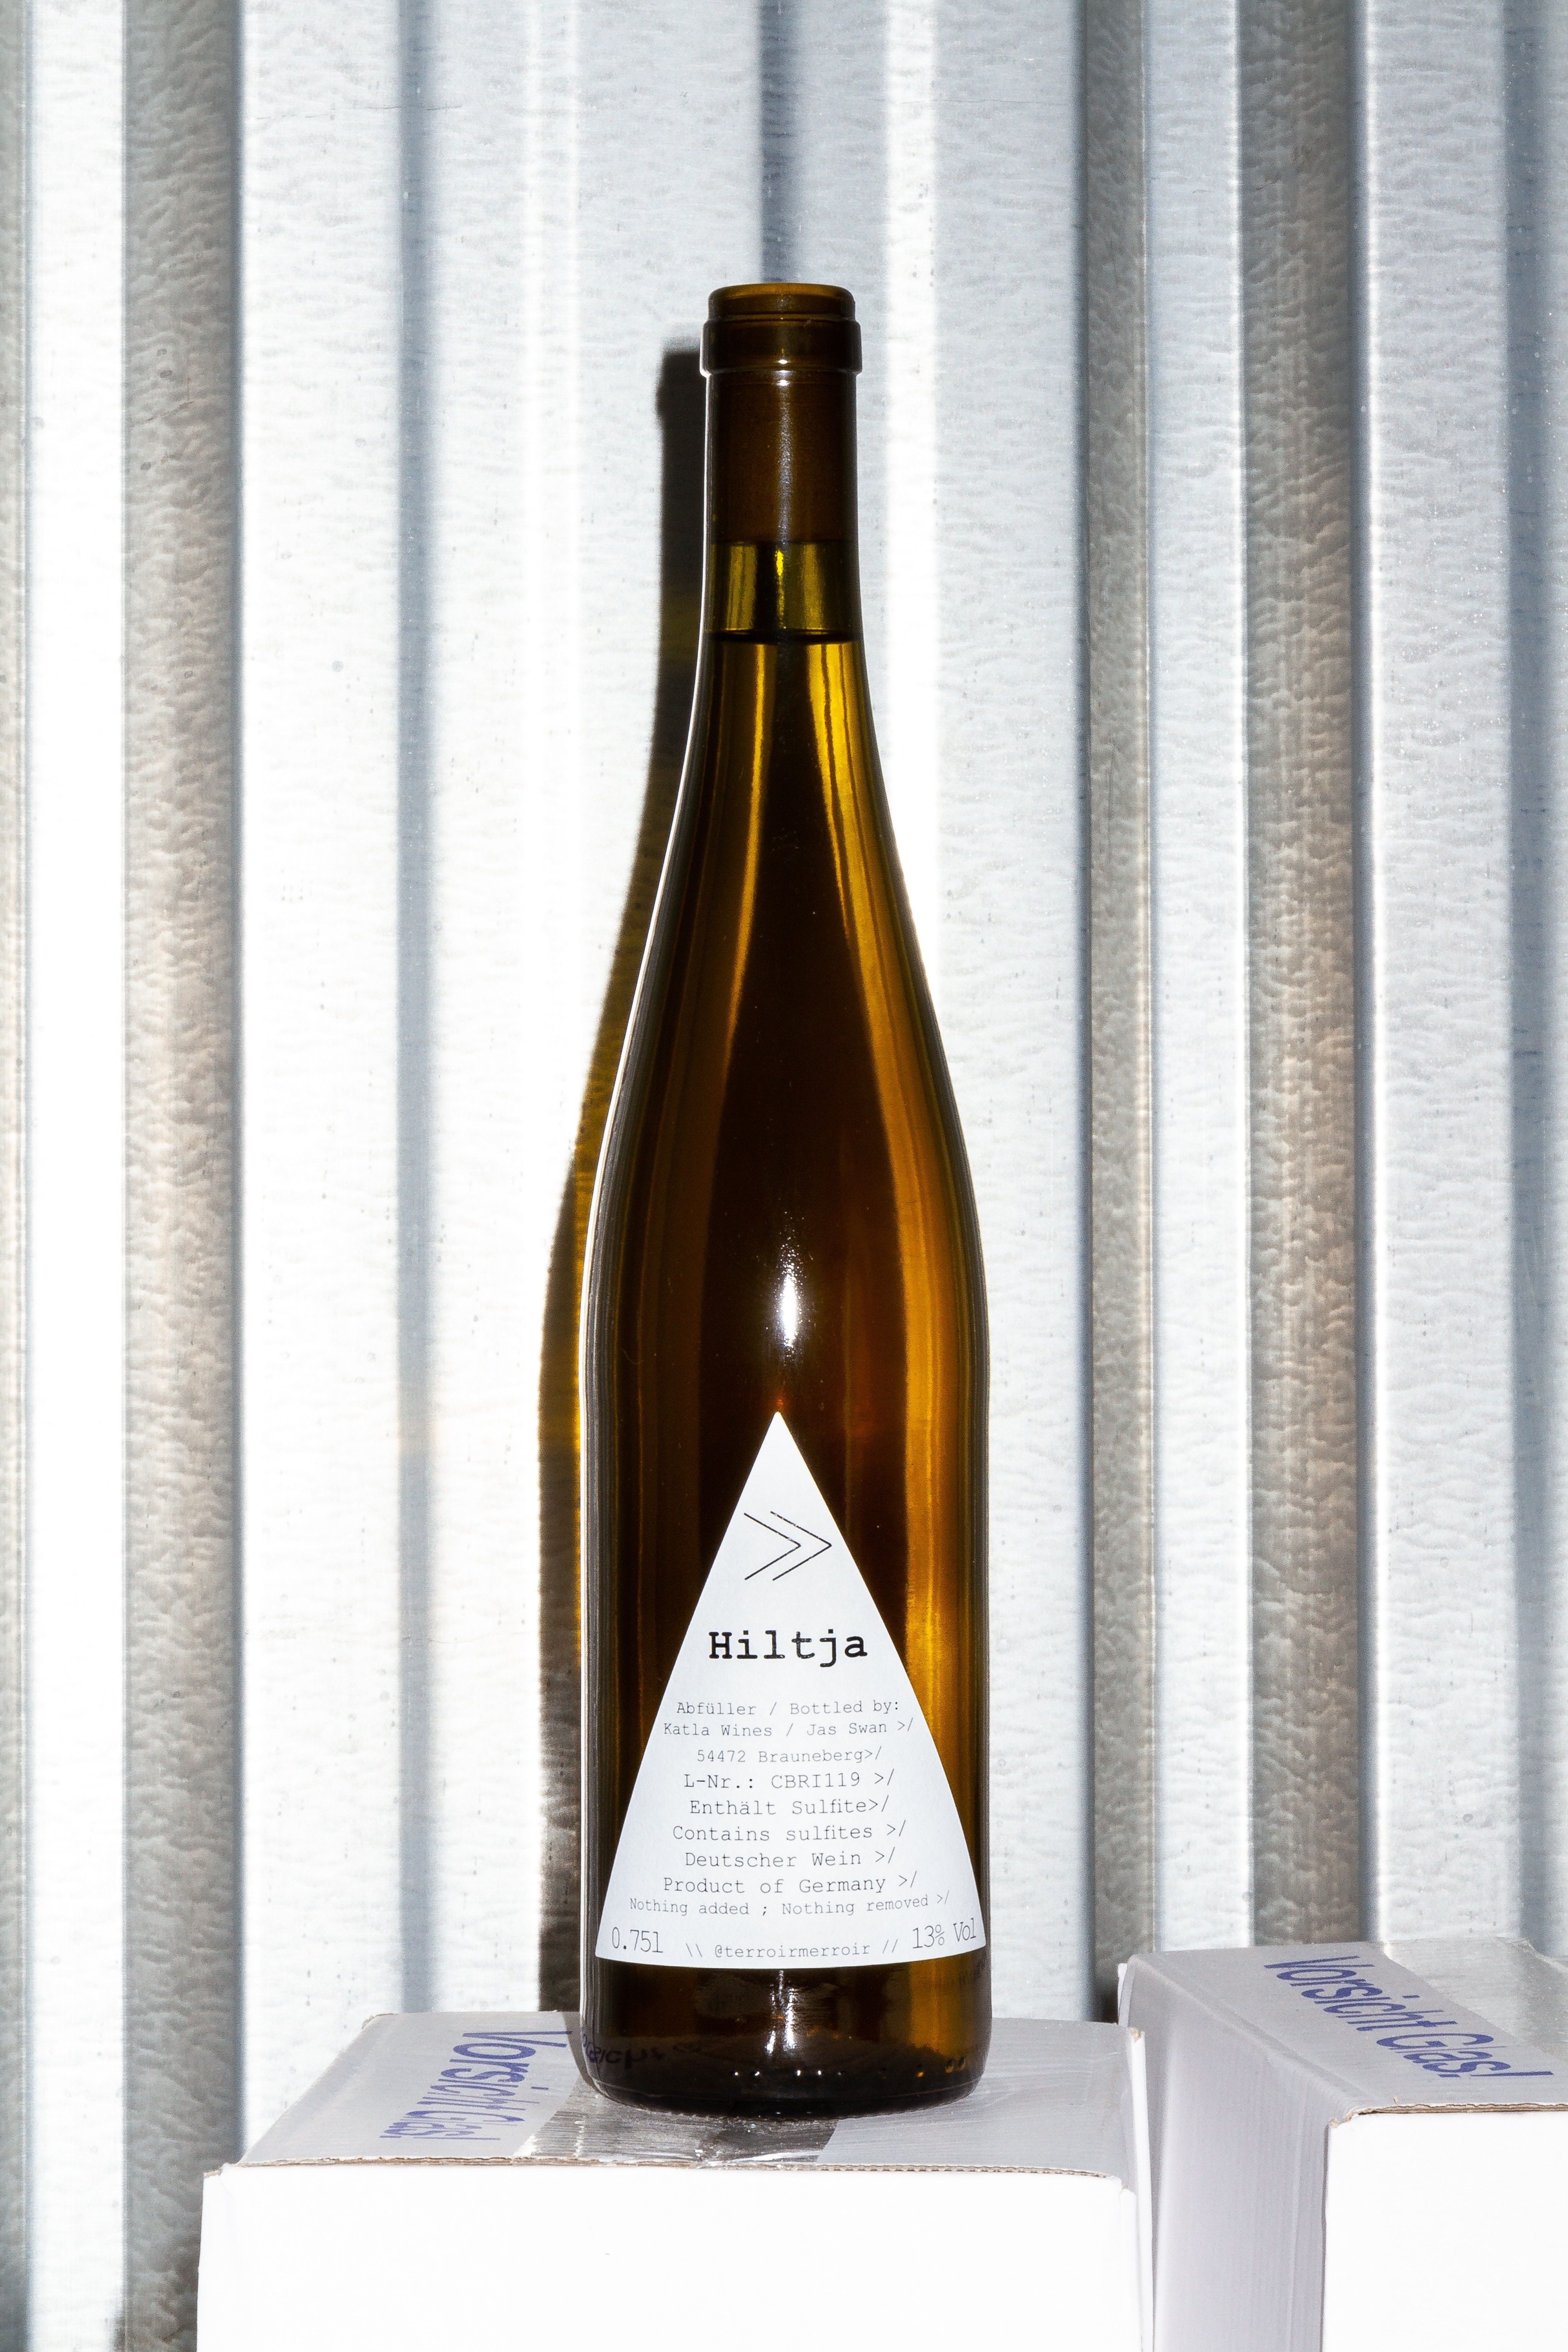 Hiltja 2019 by Katla Wines